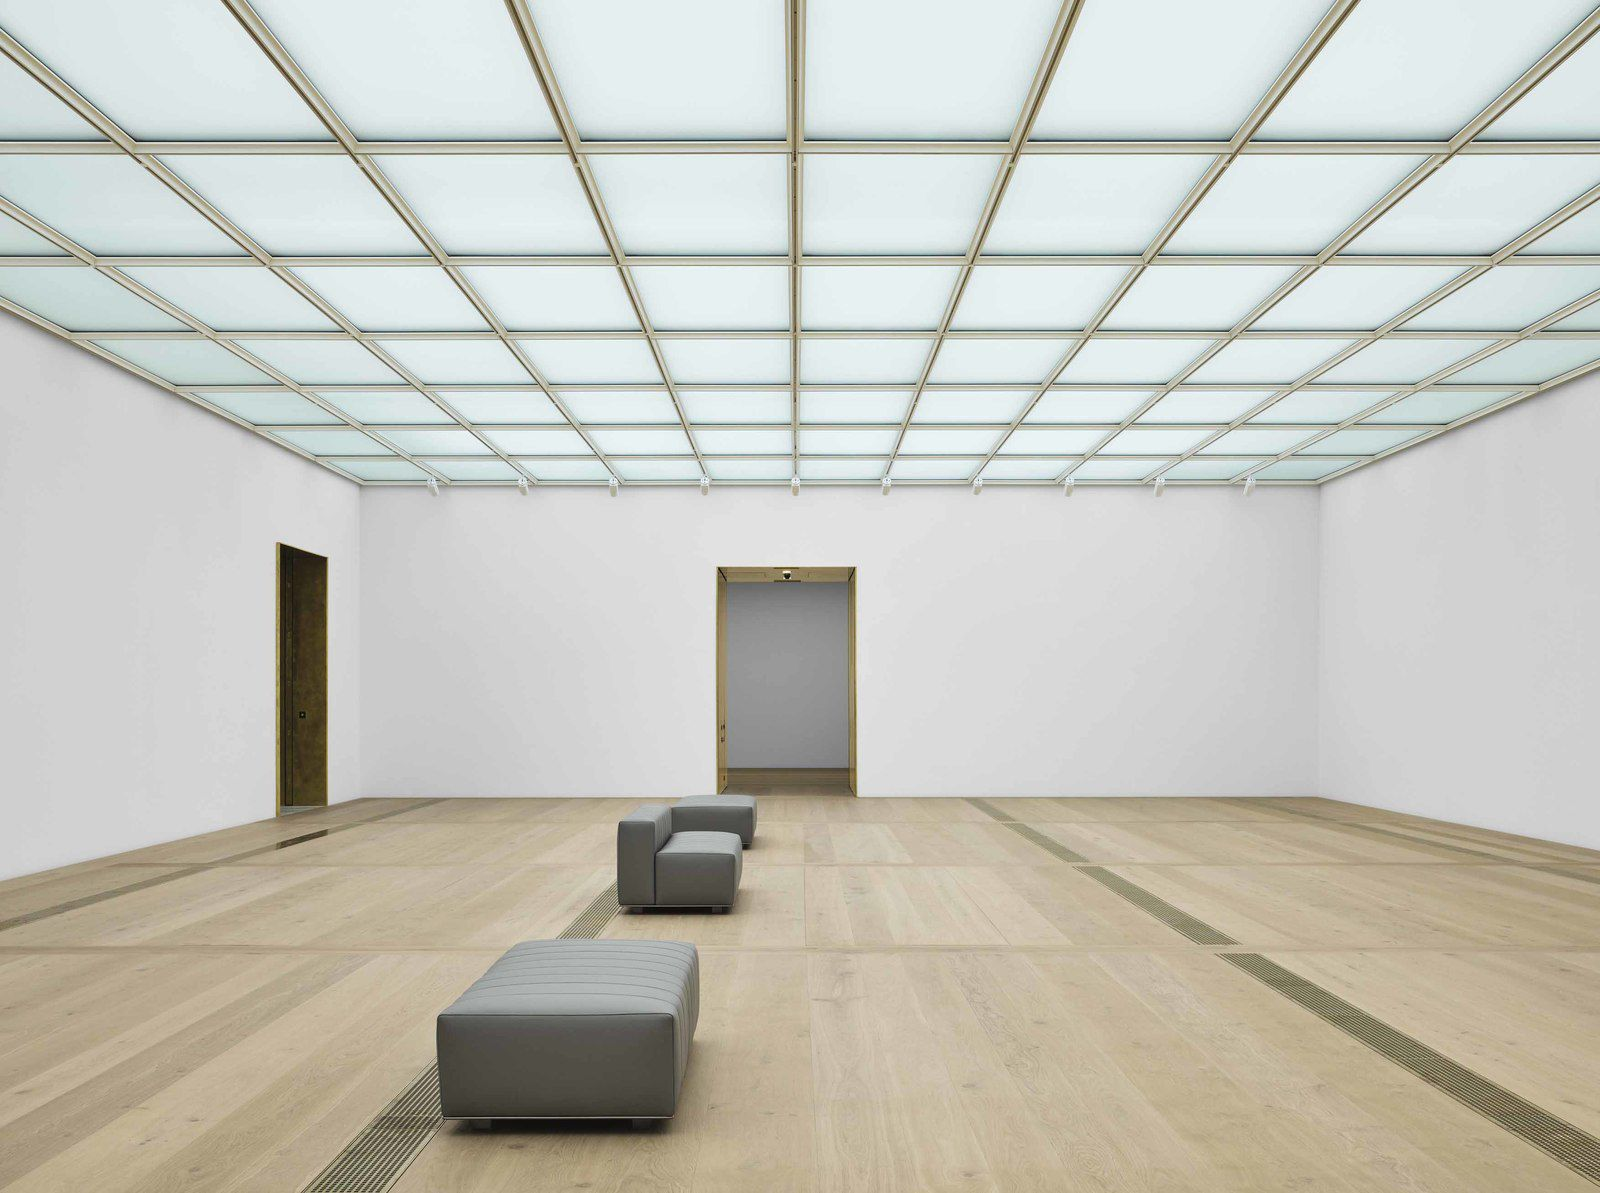 MUSEUM BUILDING EXTENSION / KUNSTHAUS ZÜRICH BY DAVID CHIPPERFIELD ARCHITECTS